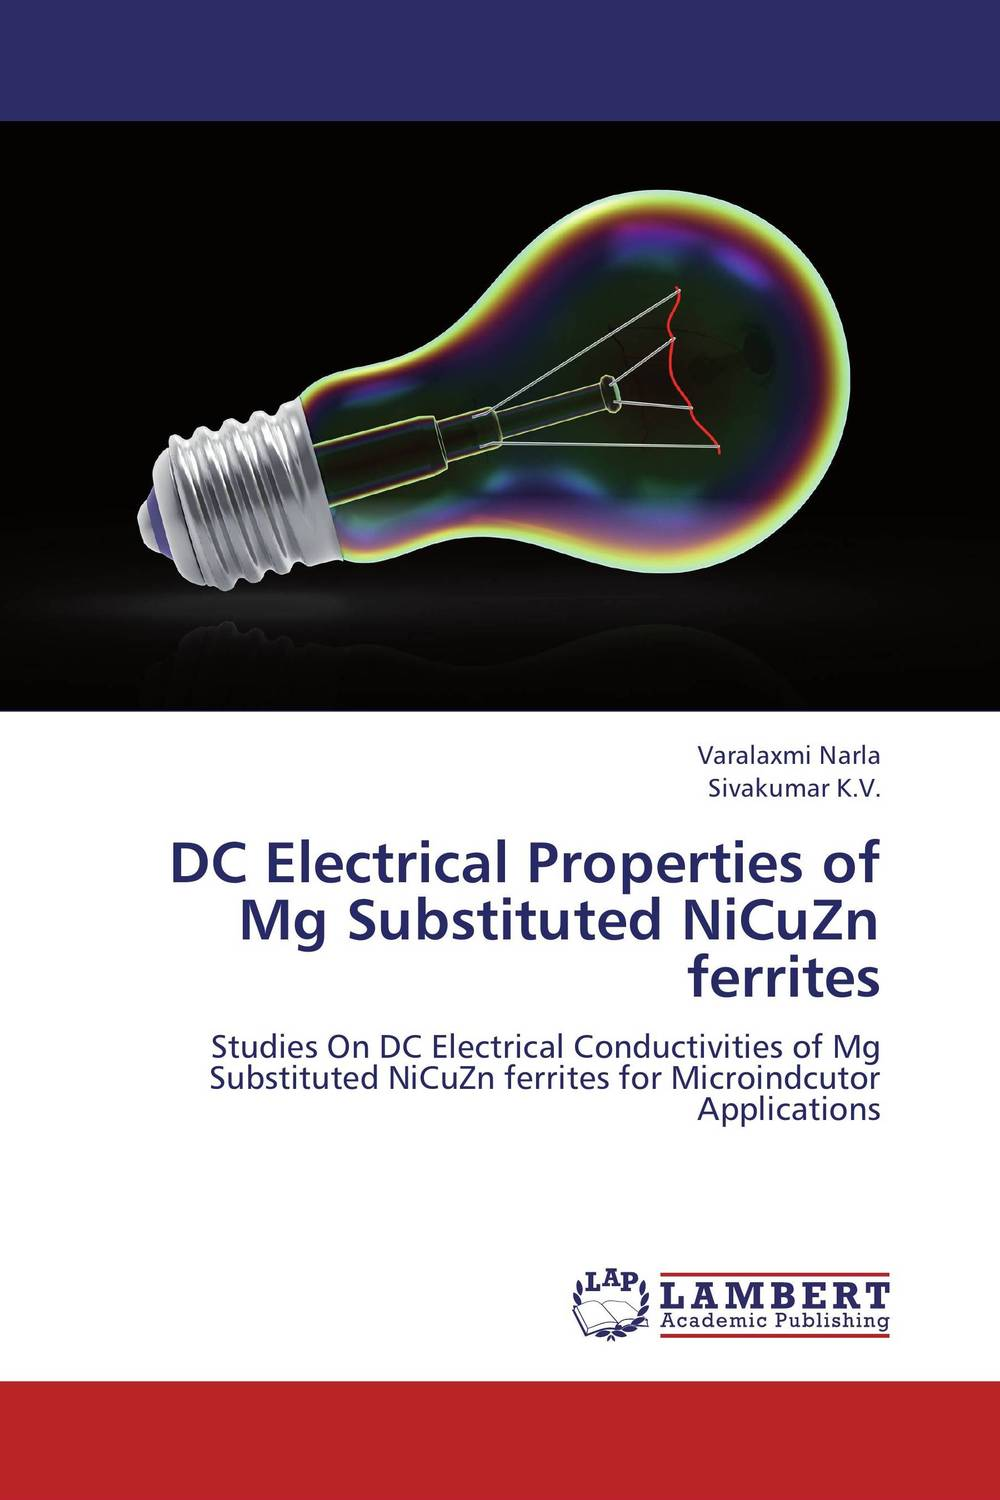 DC Electrical Properties of Mg Substituted NiCuZn ferrites nicuzn ferrite